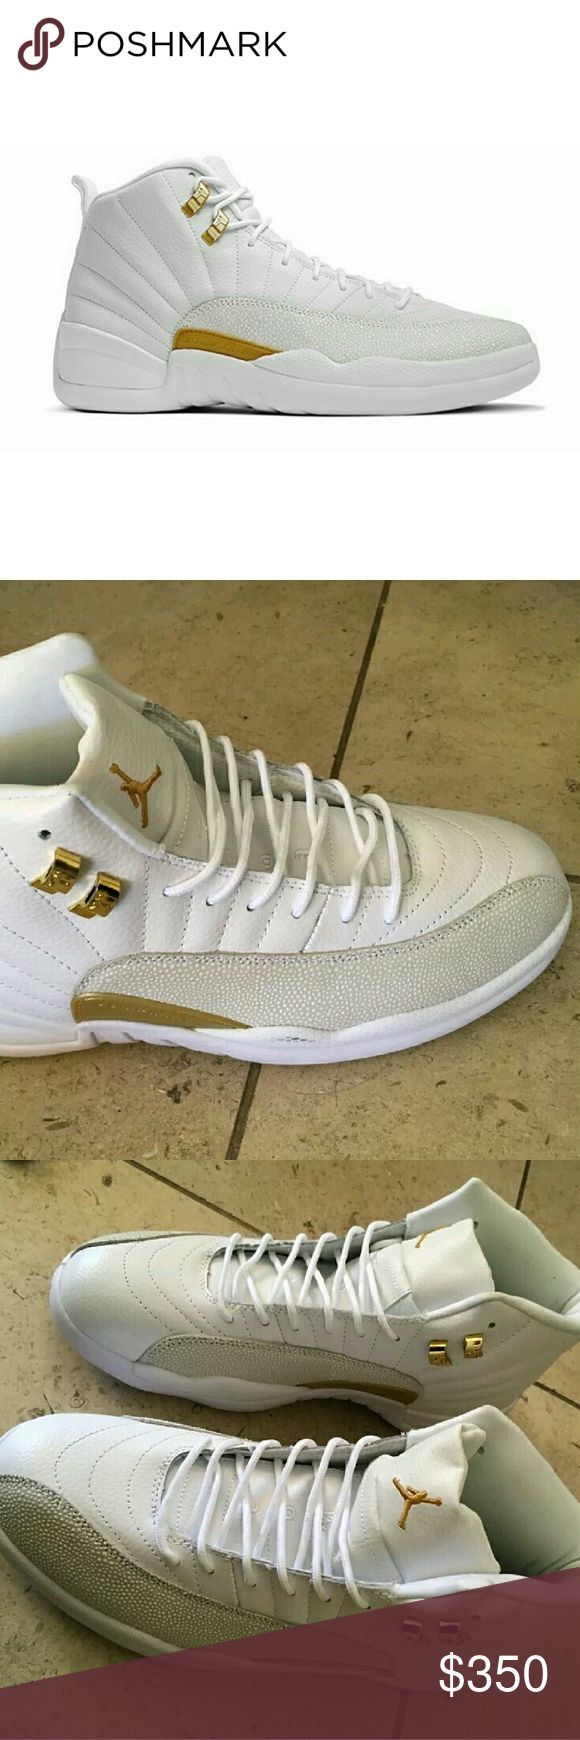 """*EXCLUSIVE* Jordan Retro 12 """"OVO"""" White We sell them new, they also come with box.  THESE ARE 50% UA. NO ONE SELLS THESE 100% AUTHENTIC We sell them less, and still great quality! Mens & Womens Sizes SERIOUS BUSINESS ONLY PLEASE!  P a y p a l is the only option we use. CONTACT BEFORE YOU PURCHASE PLEASE! Jordan Shoes Athletic Shoes"""